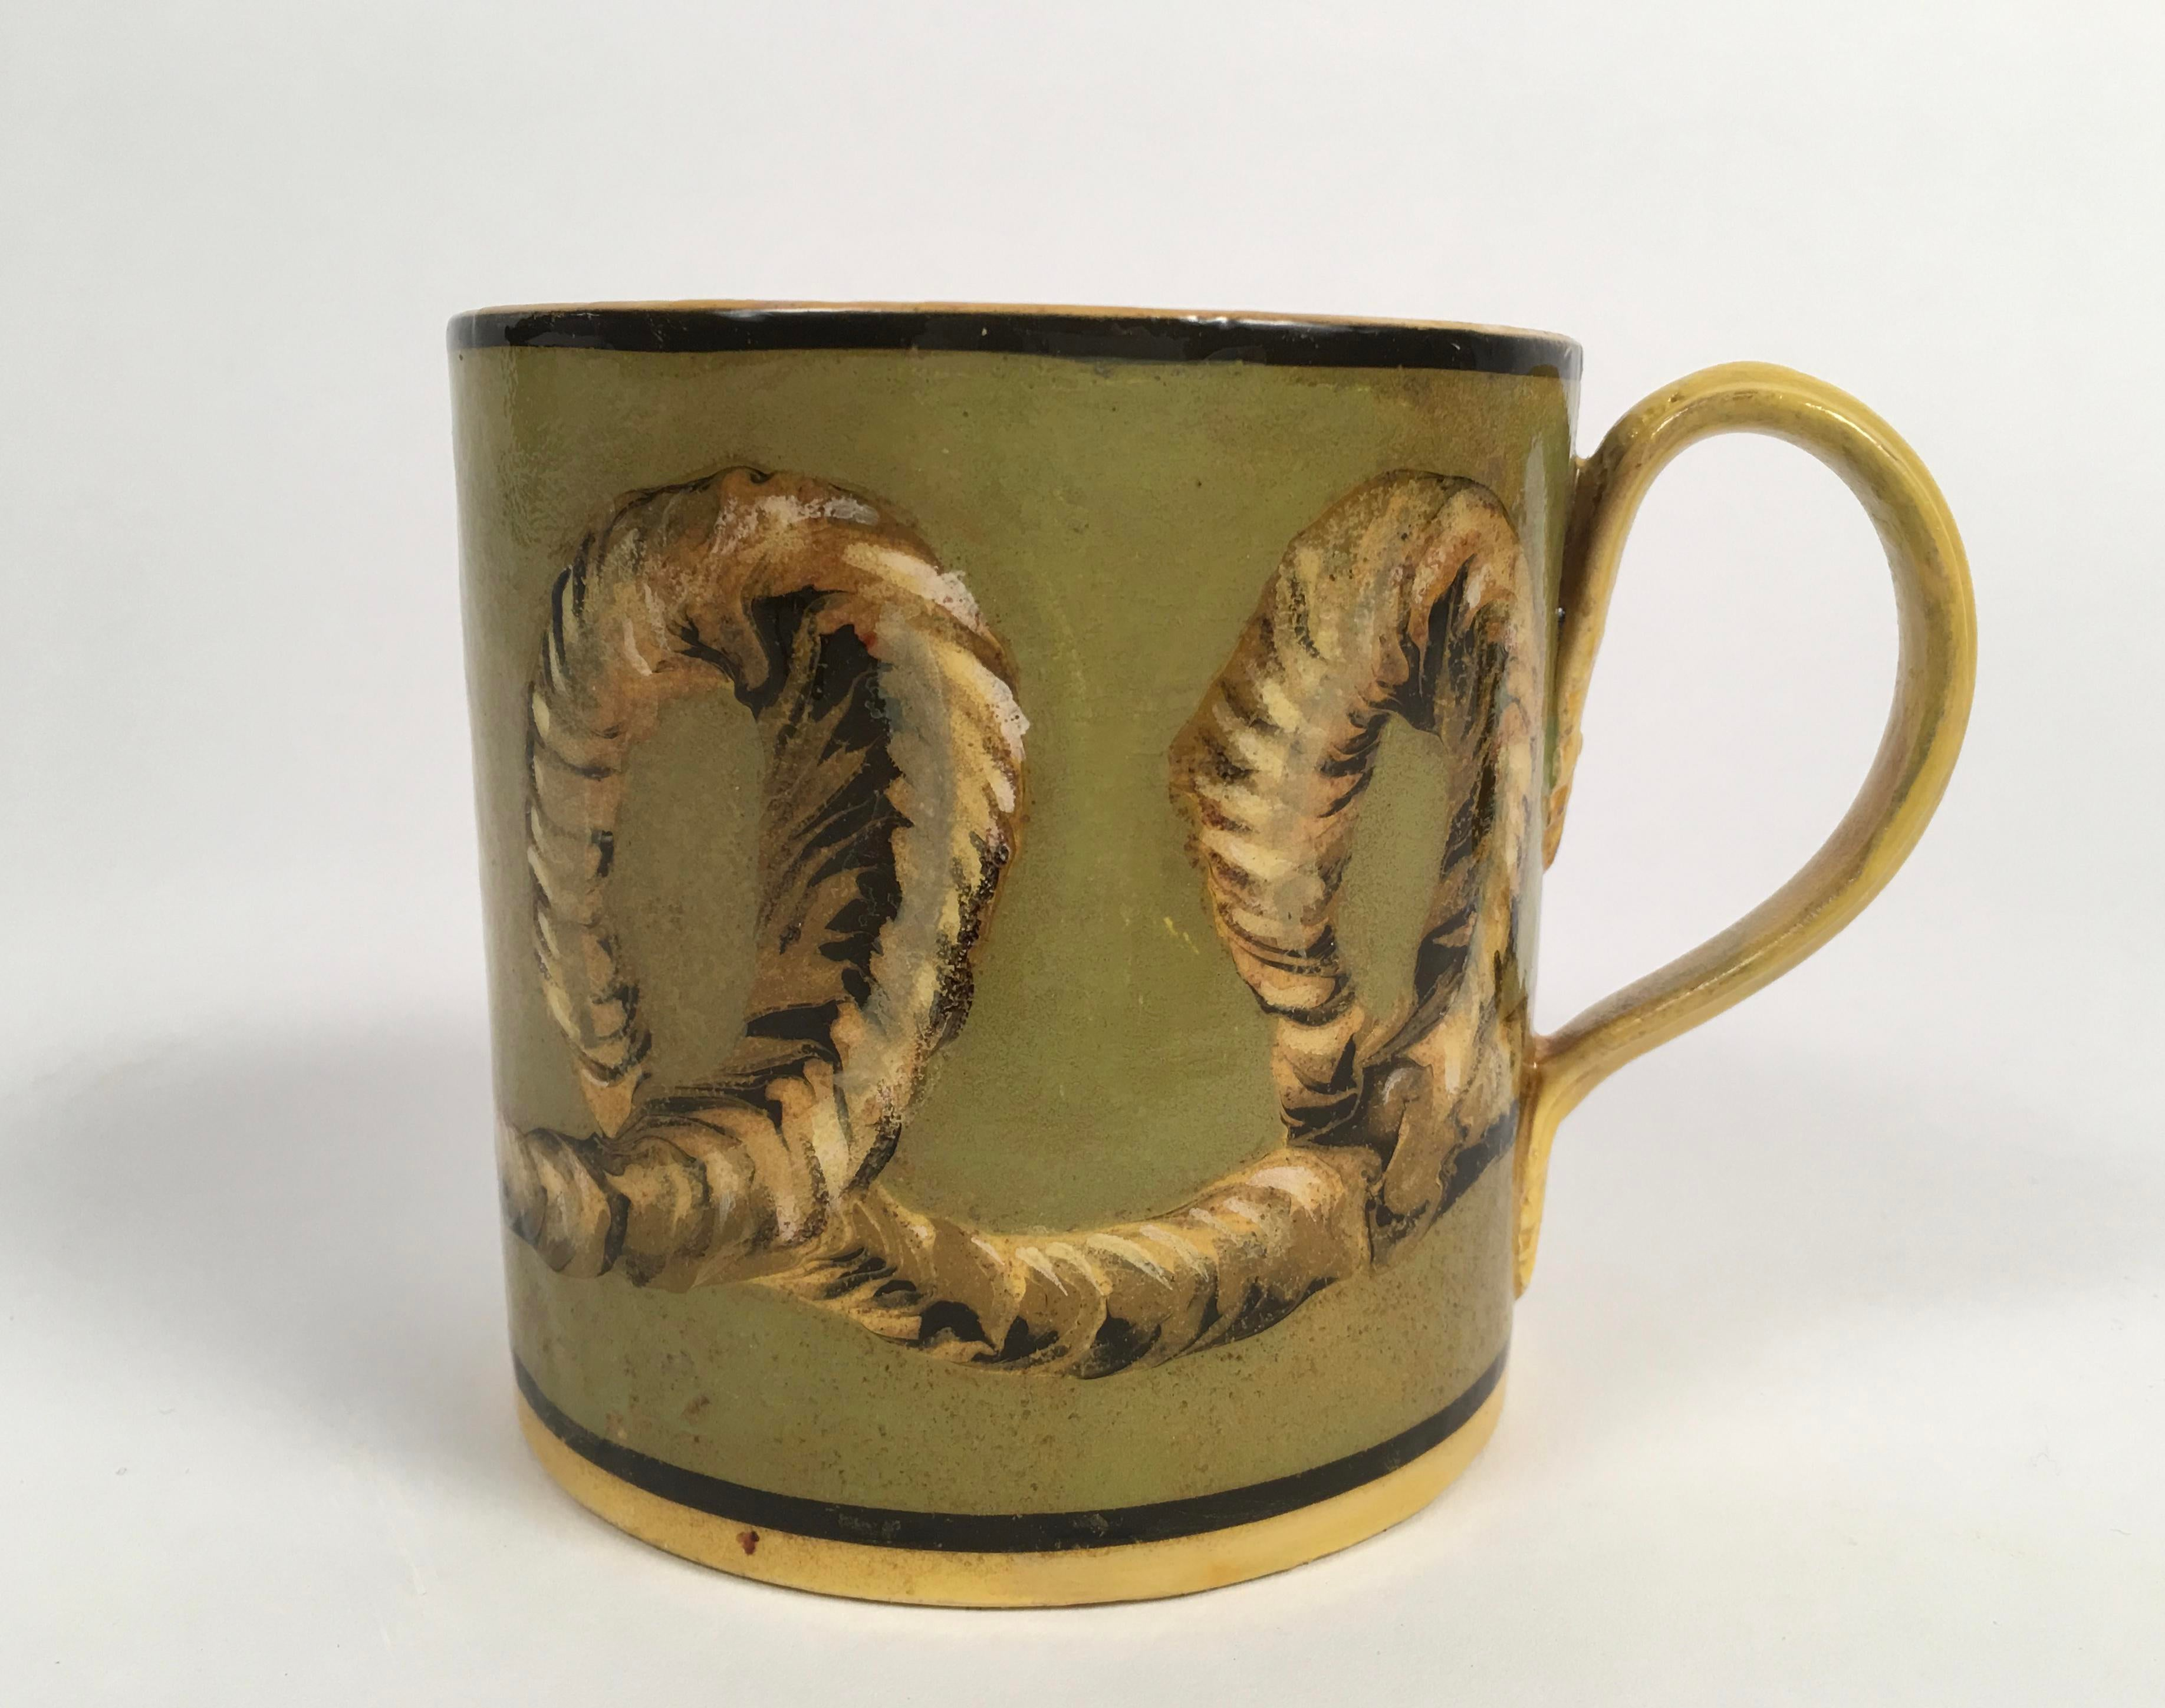 French Yellow Creil Mochaware Pottery Mug - Image 2 of 7  sc 1 st  Decaso & World-Class French Yellow Creil Mochaware Pottery Mug | DECASO